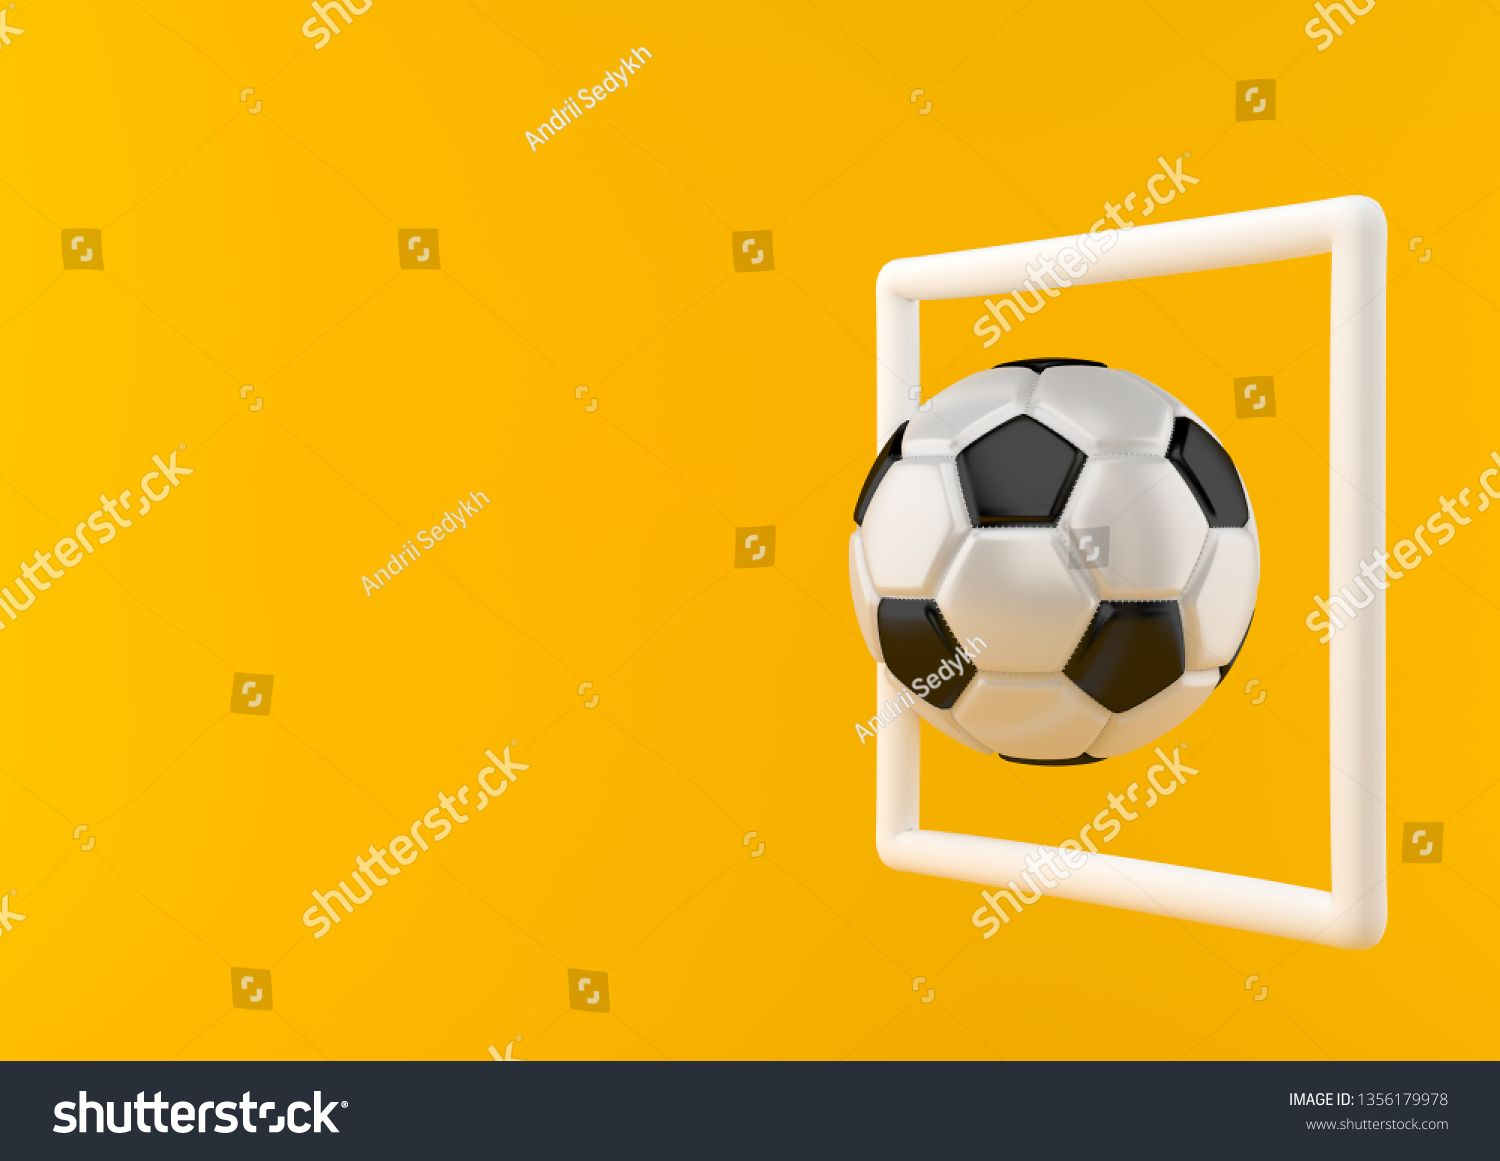 Classic Soccer Ball In The Goal On Bright Yellow Background In Pastel Colors Minimalism Concept Business Card Modern Soccer Ball Professional Business Cards